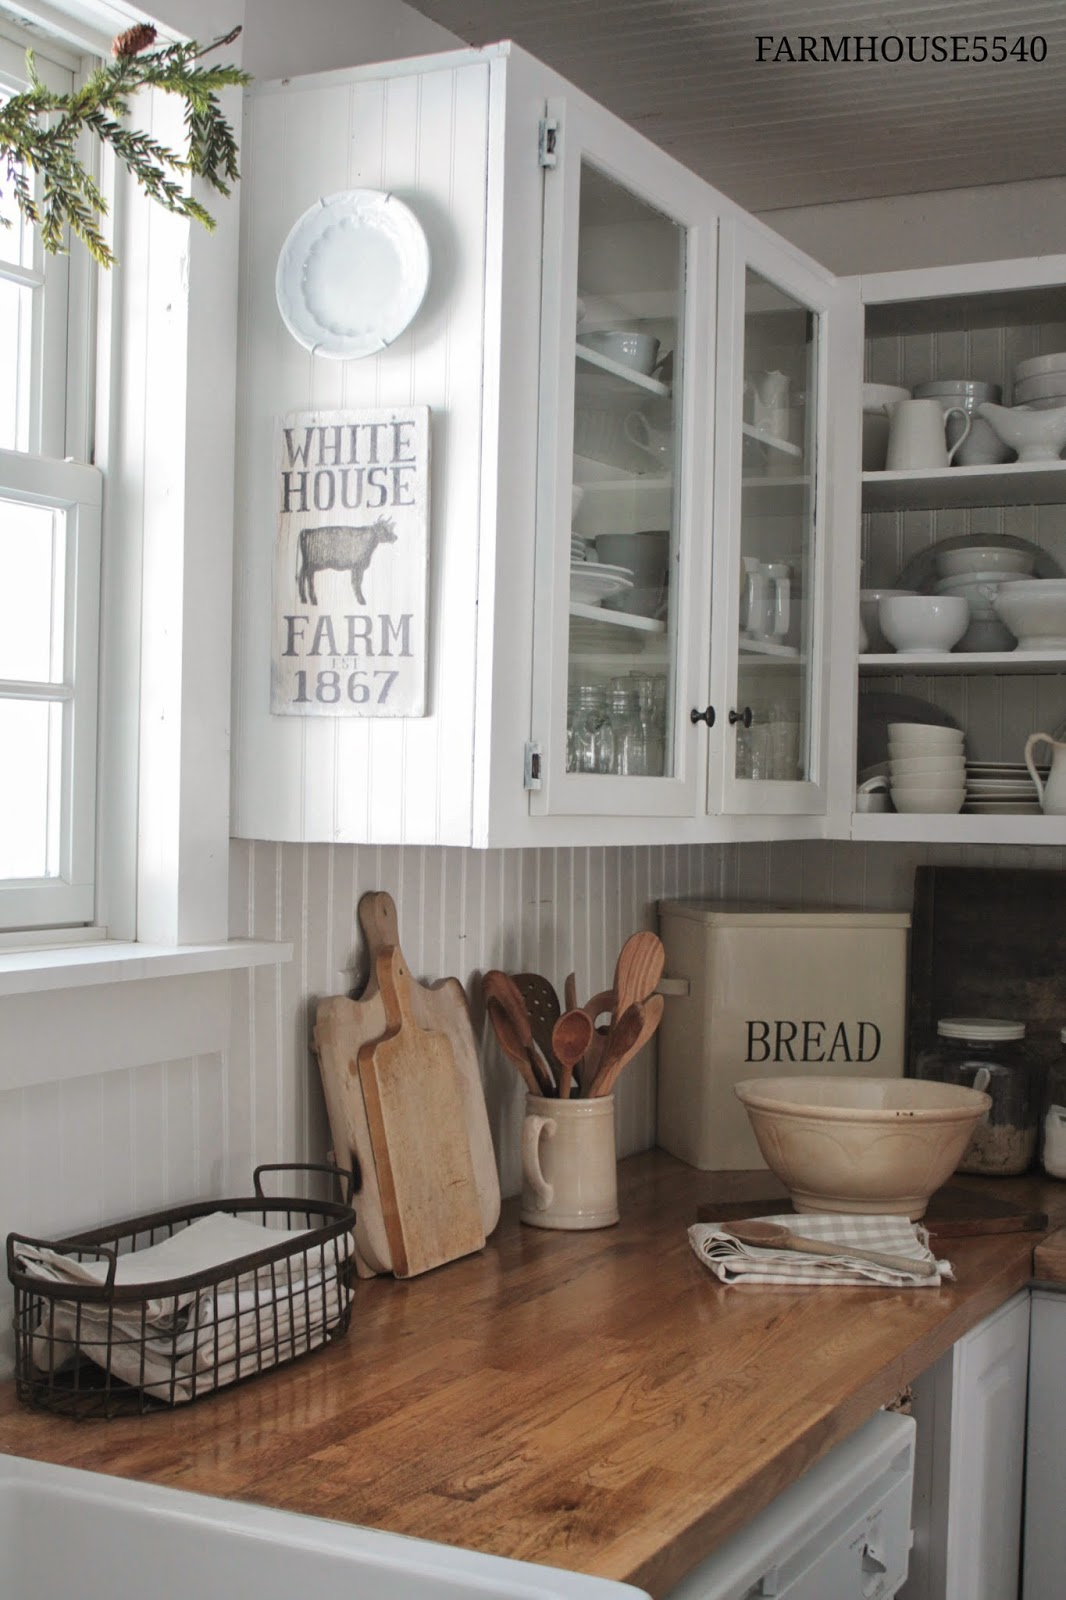 Check out these 7 Ideas for a Farmhouse Inspired Kitchen on kitchen ideas green cabinets, kitchen ideas with turquoise, kitchen ideas gray cabinets, kitchen ideas brown cabinets, kitchen ideas black cabinets, kitchen ideas clear cabinets, kitchen ideas red cabinets,